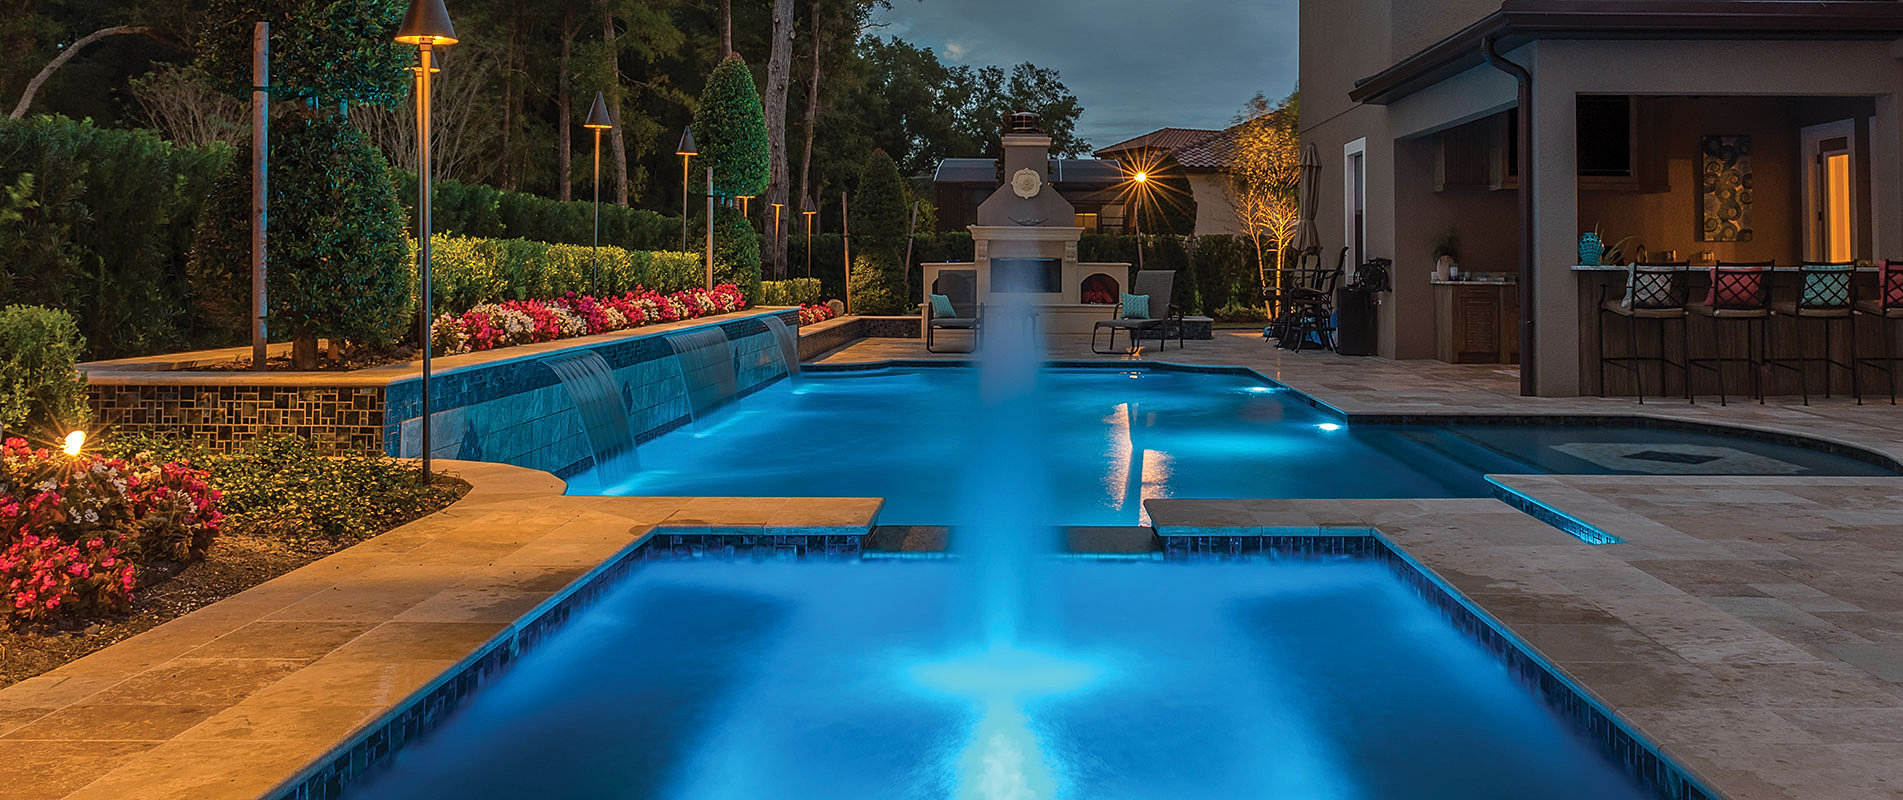 Custom luxury pools in central florida by southern pool for Pool design orlando florida